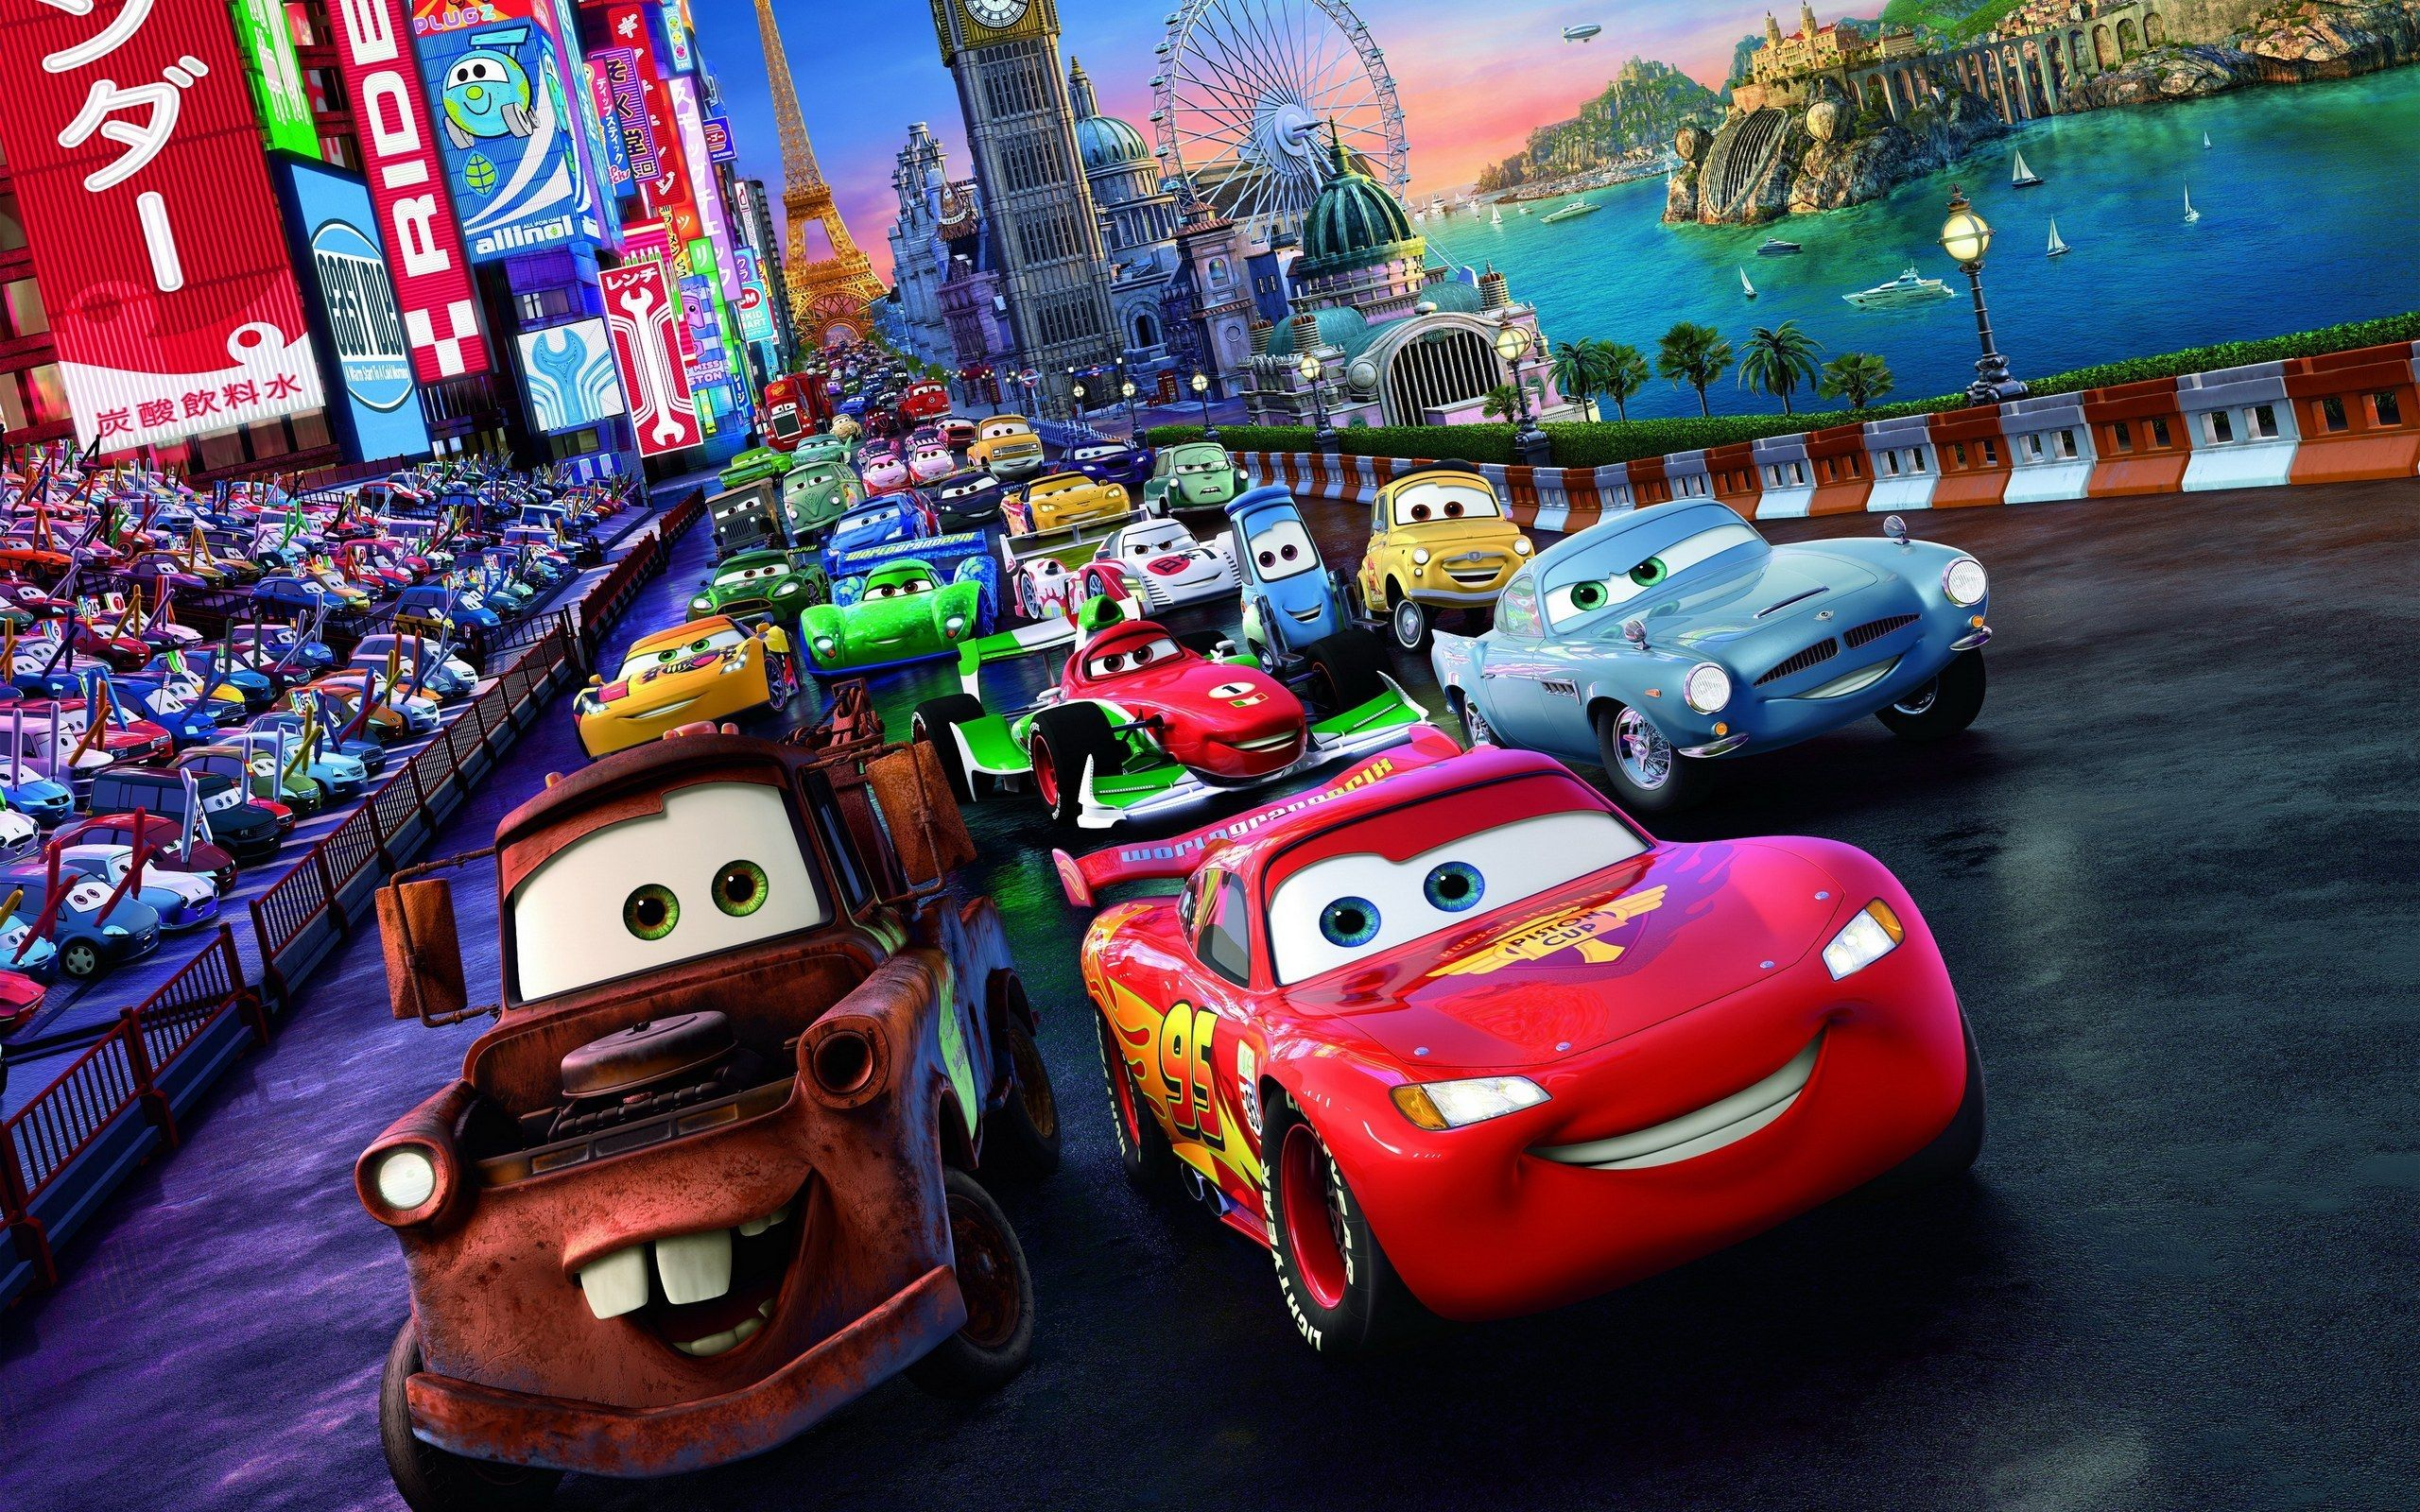 2560x1600 - Wallpaper Cars Cartoon 13